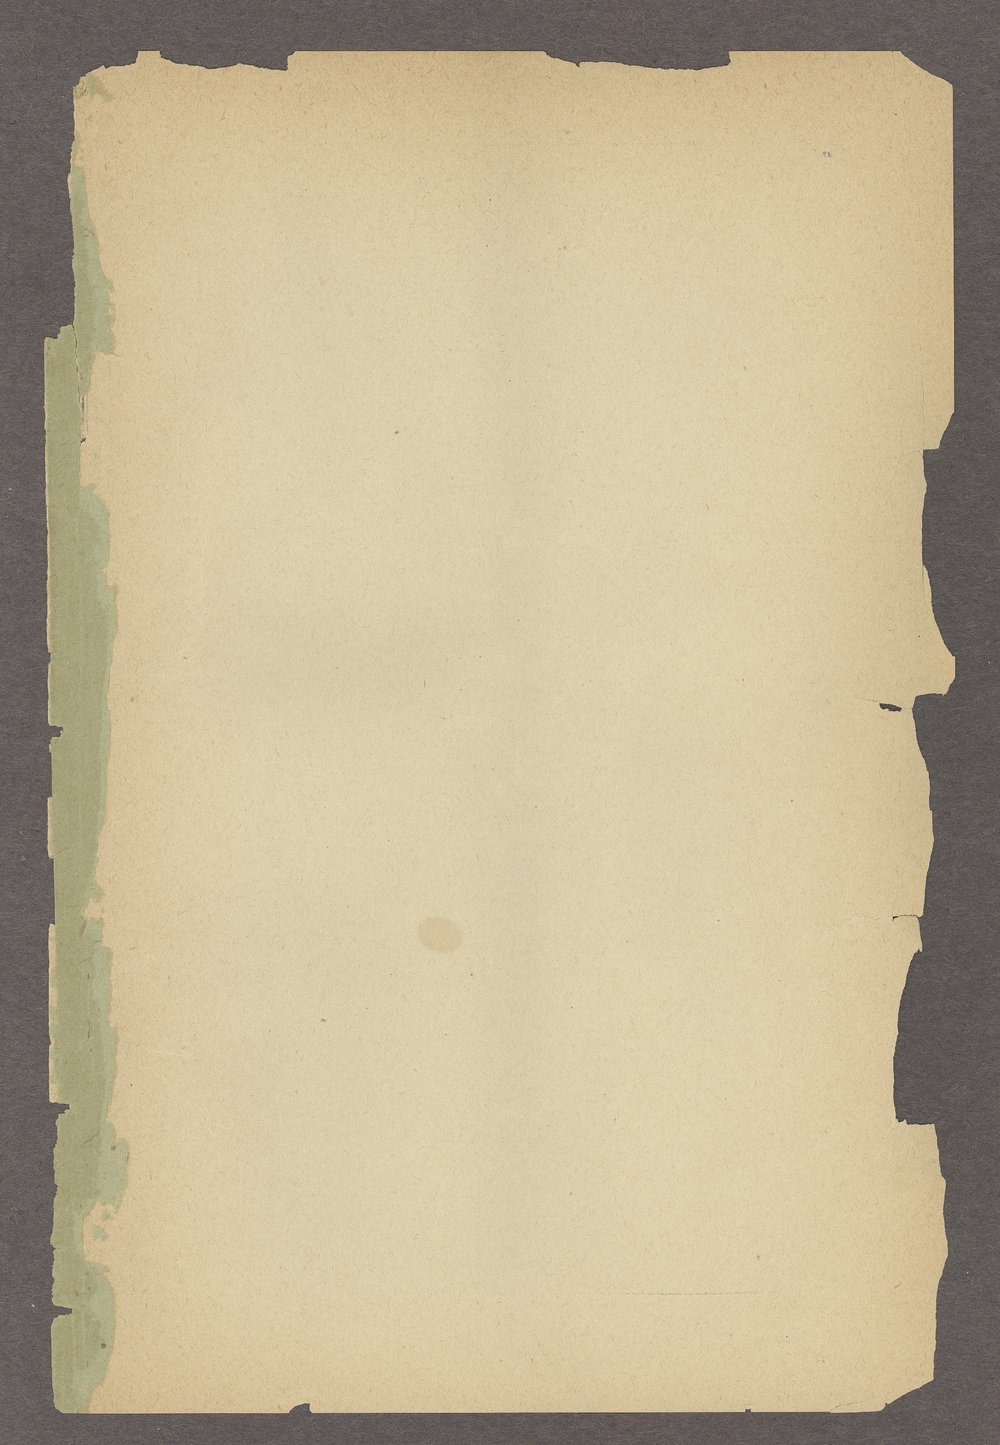 Biennial report of the State Reform School, 1892 - 2